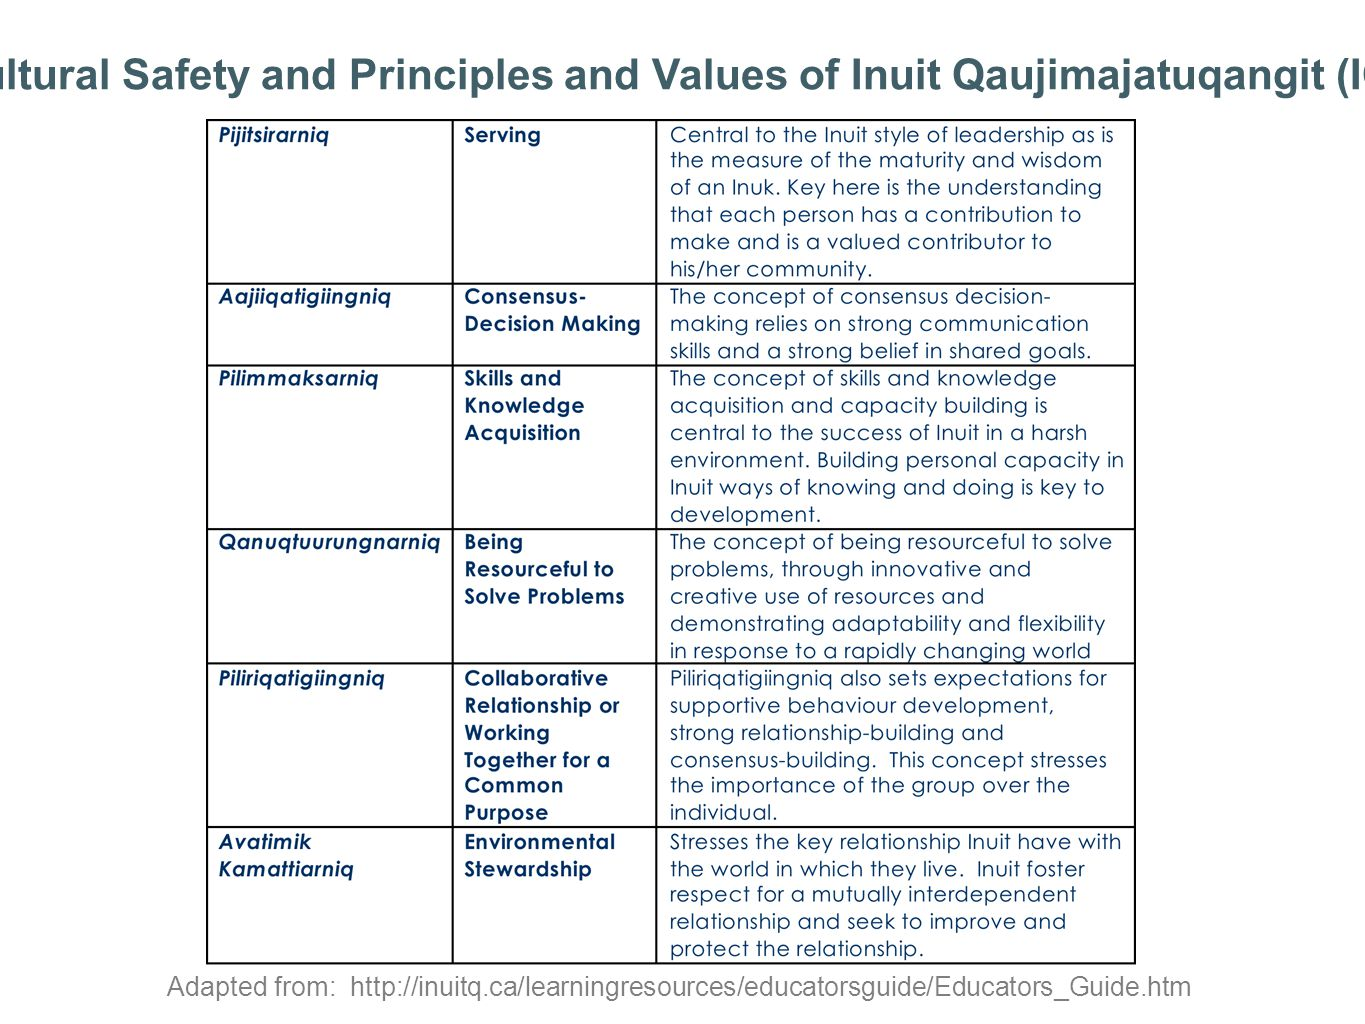 Cultural Safety and Principles and Values of Inuit Qaujimajatuqangit (IQ)